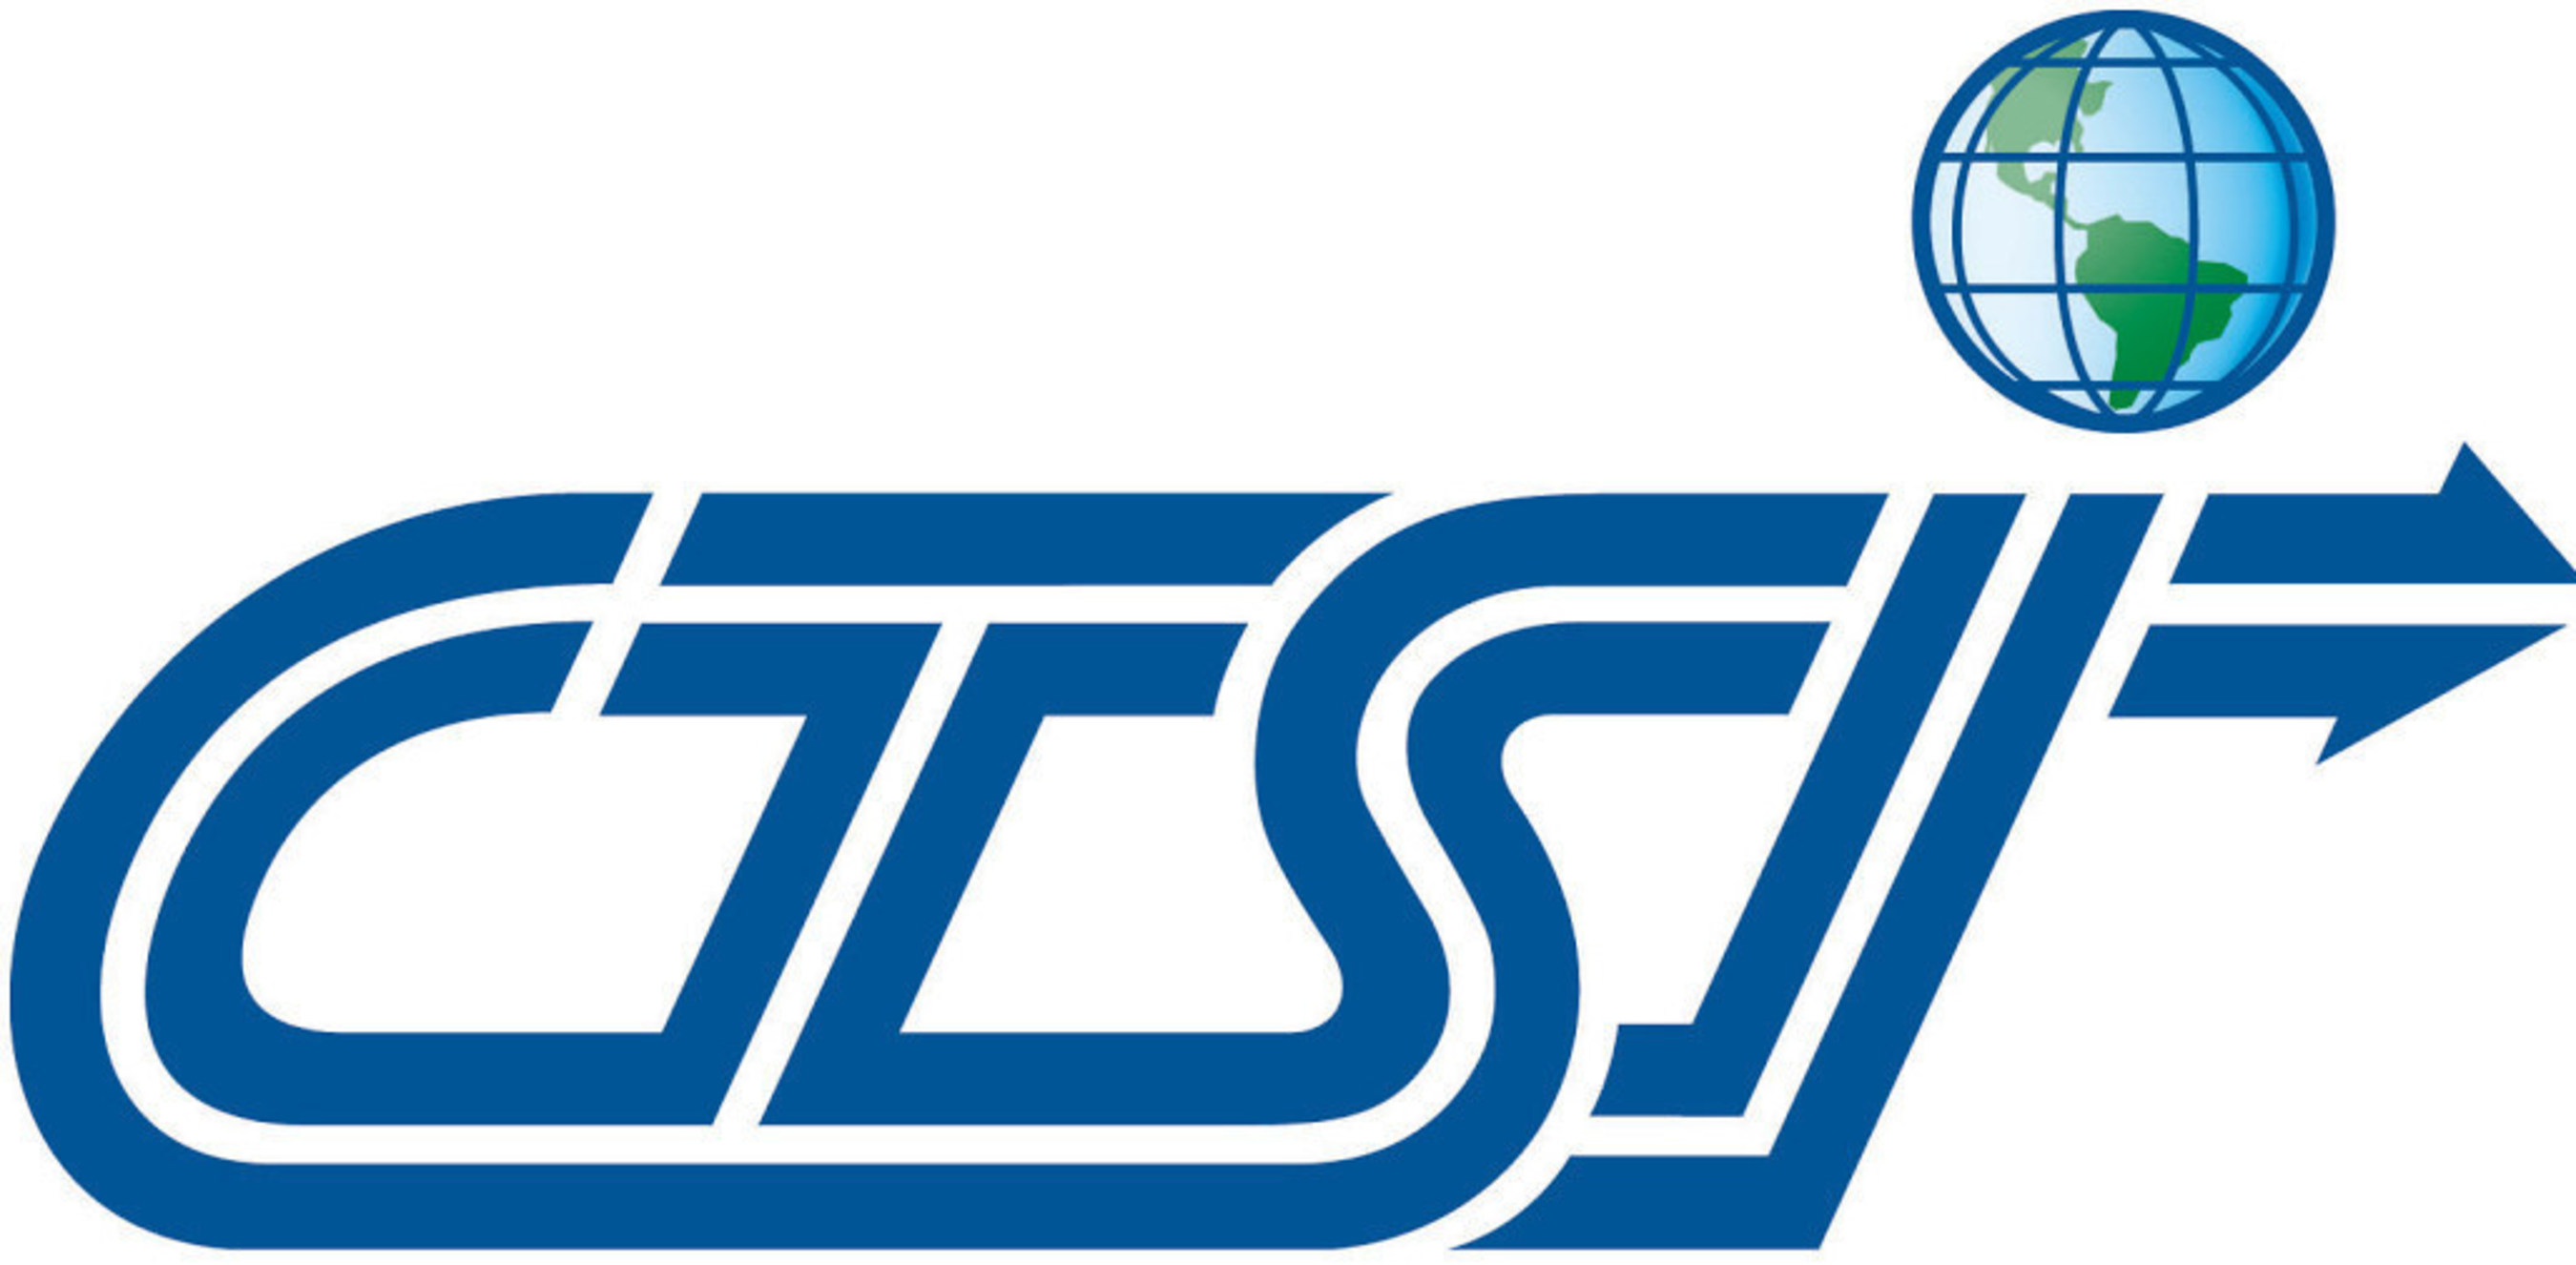 Founded in 1957, CTSI-Global is a global leader in supply chain business intelligence, transportation management system applications, and freight audit and payment services for shippers and third-party logistics providers.